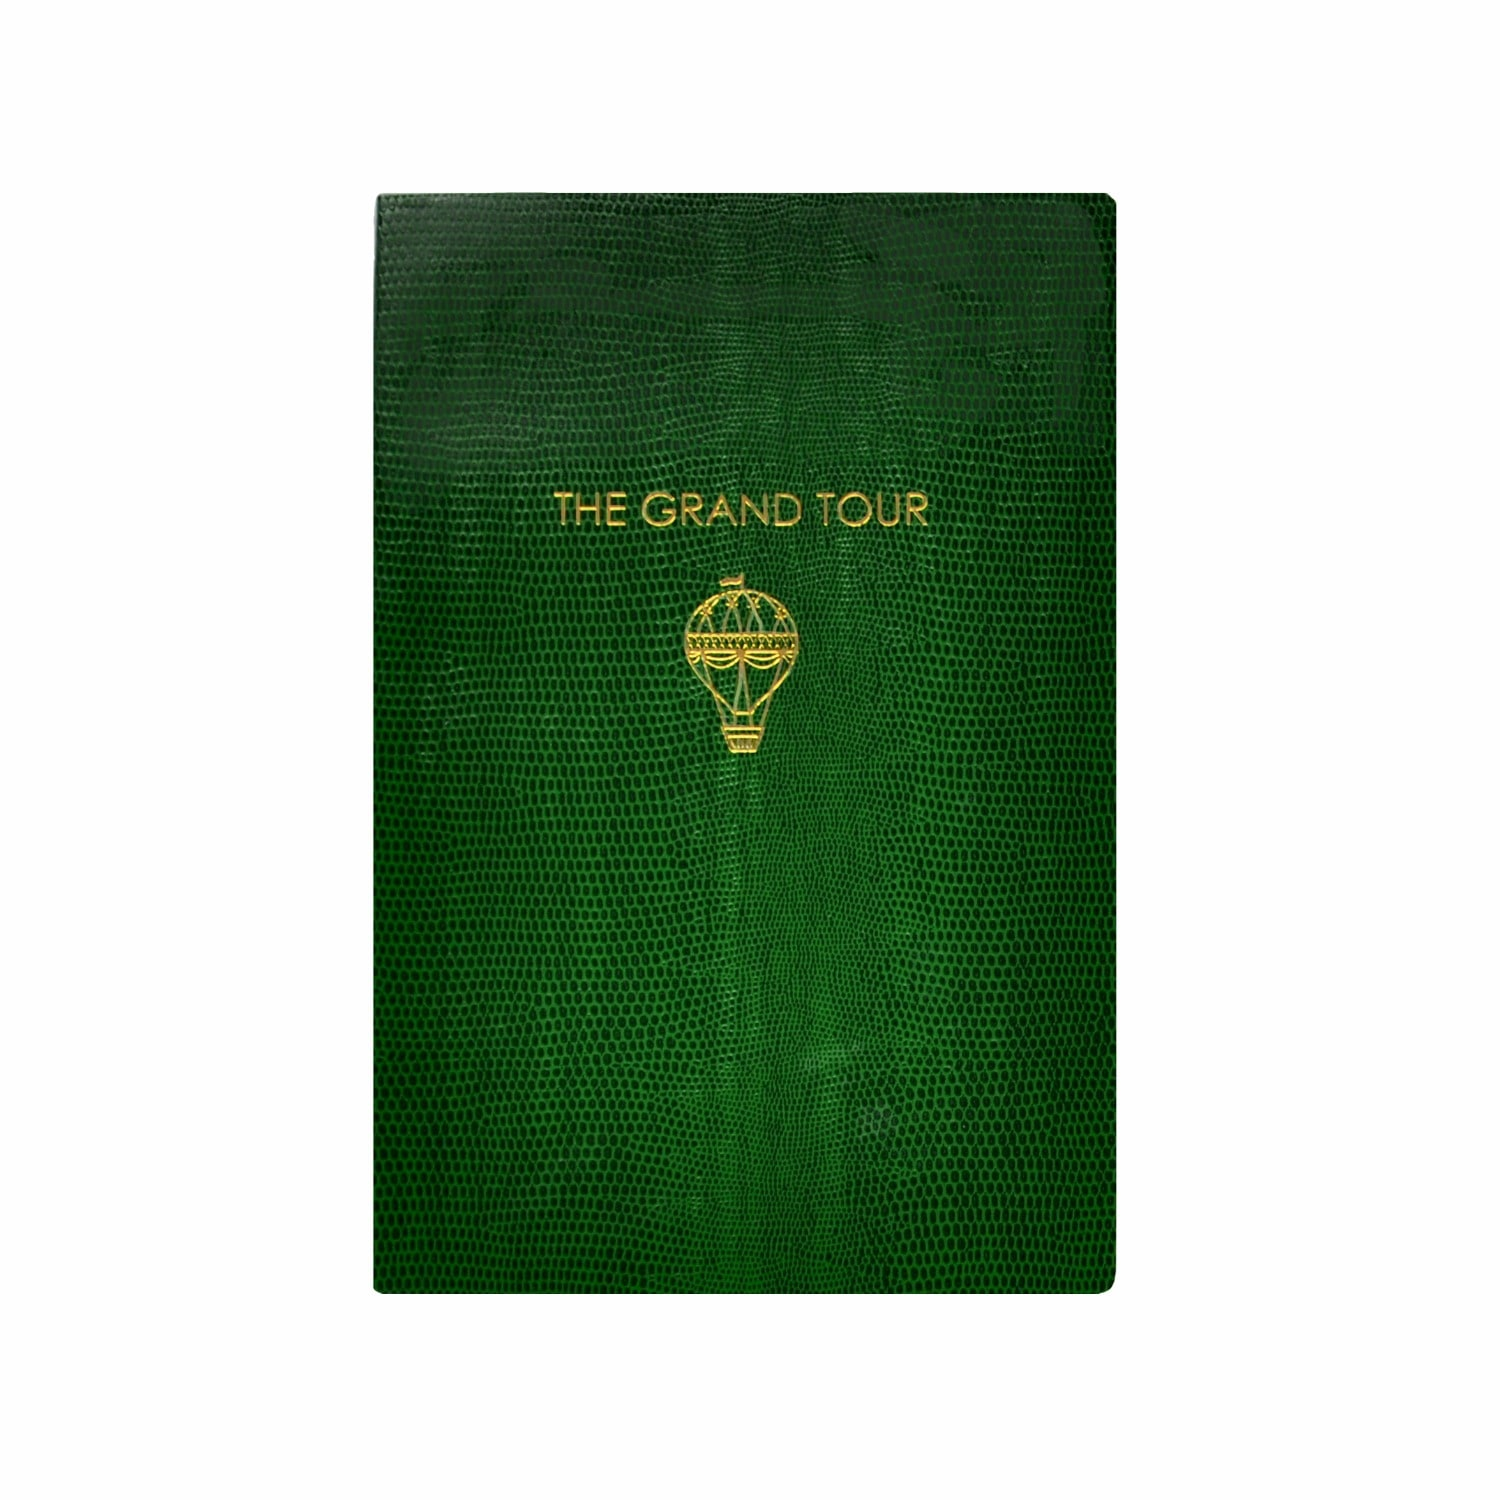 Sloane Stationery - 'The Grand Tour' Softcover Notebook